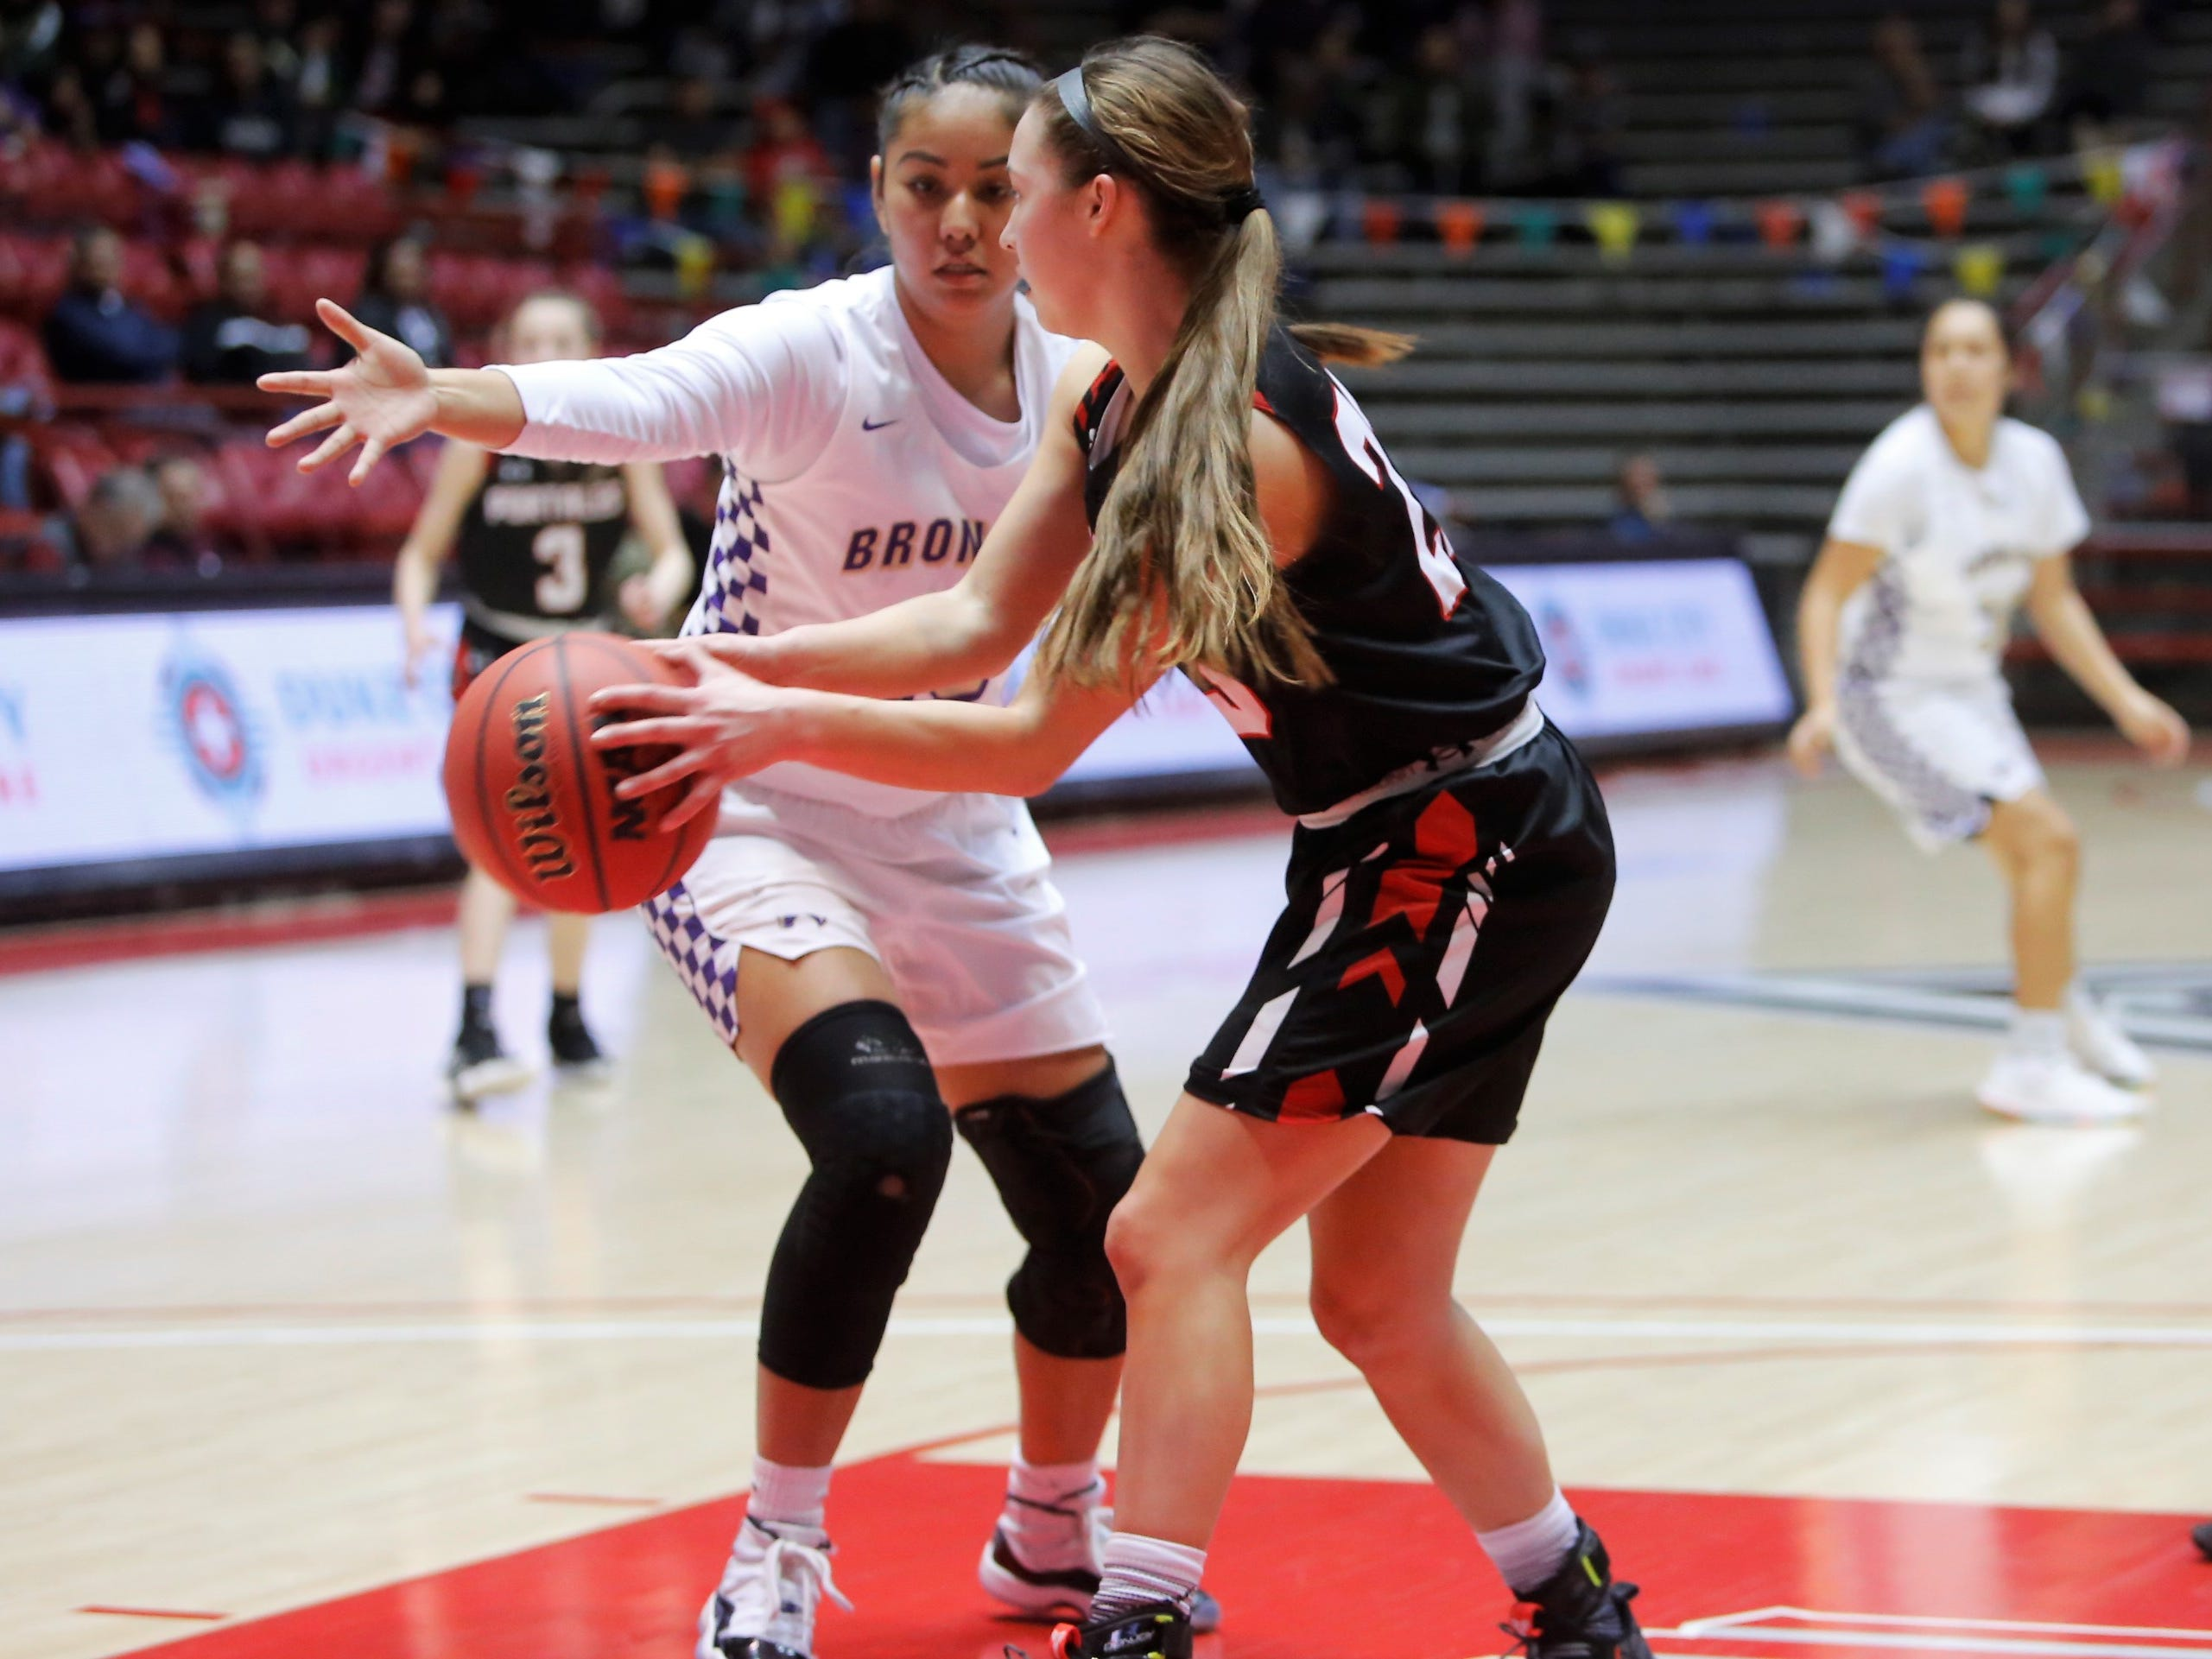 Portales's Mattison Blakey looks to make a bounce pass against Kirtland Central's Aubrey Thomas during Tuesday's 4A state quarterfinals game at Dreamstyle Arena in Albuquerque.